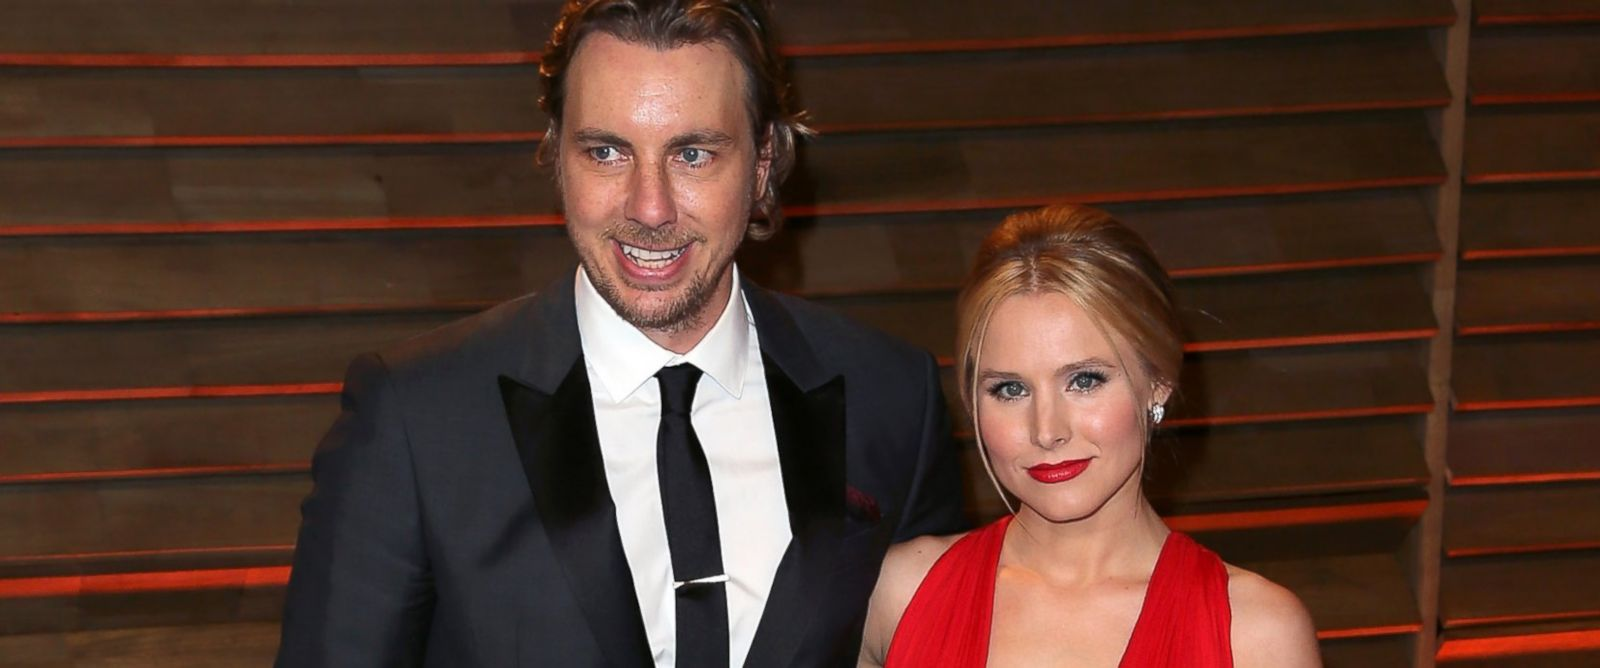 PHOTO: Actors/husband & wife Dax Shepard, left, and Kristen Bell attend the 2014 Vanity Fair Oscar Party hosted by Graydon Carter in this March 2, 2014 in West Hollywood, Calif.